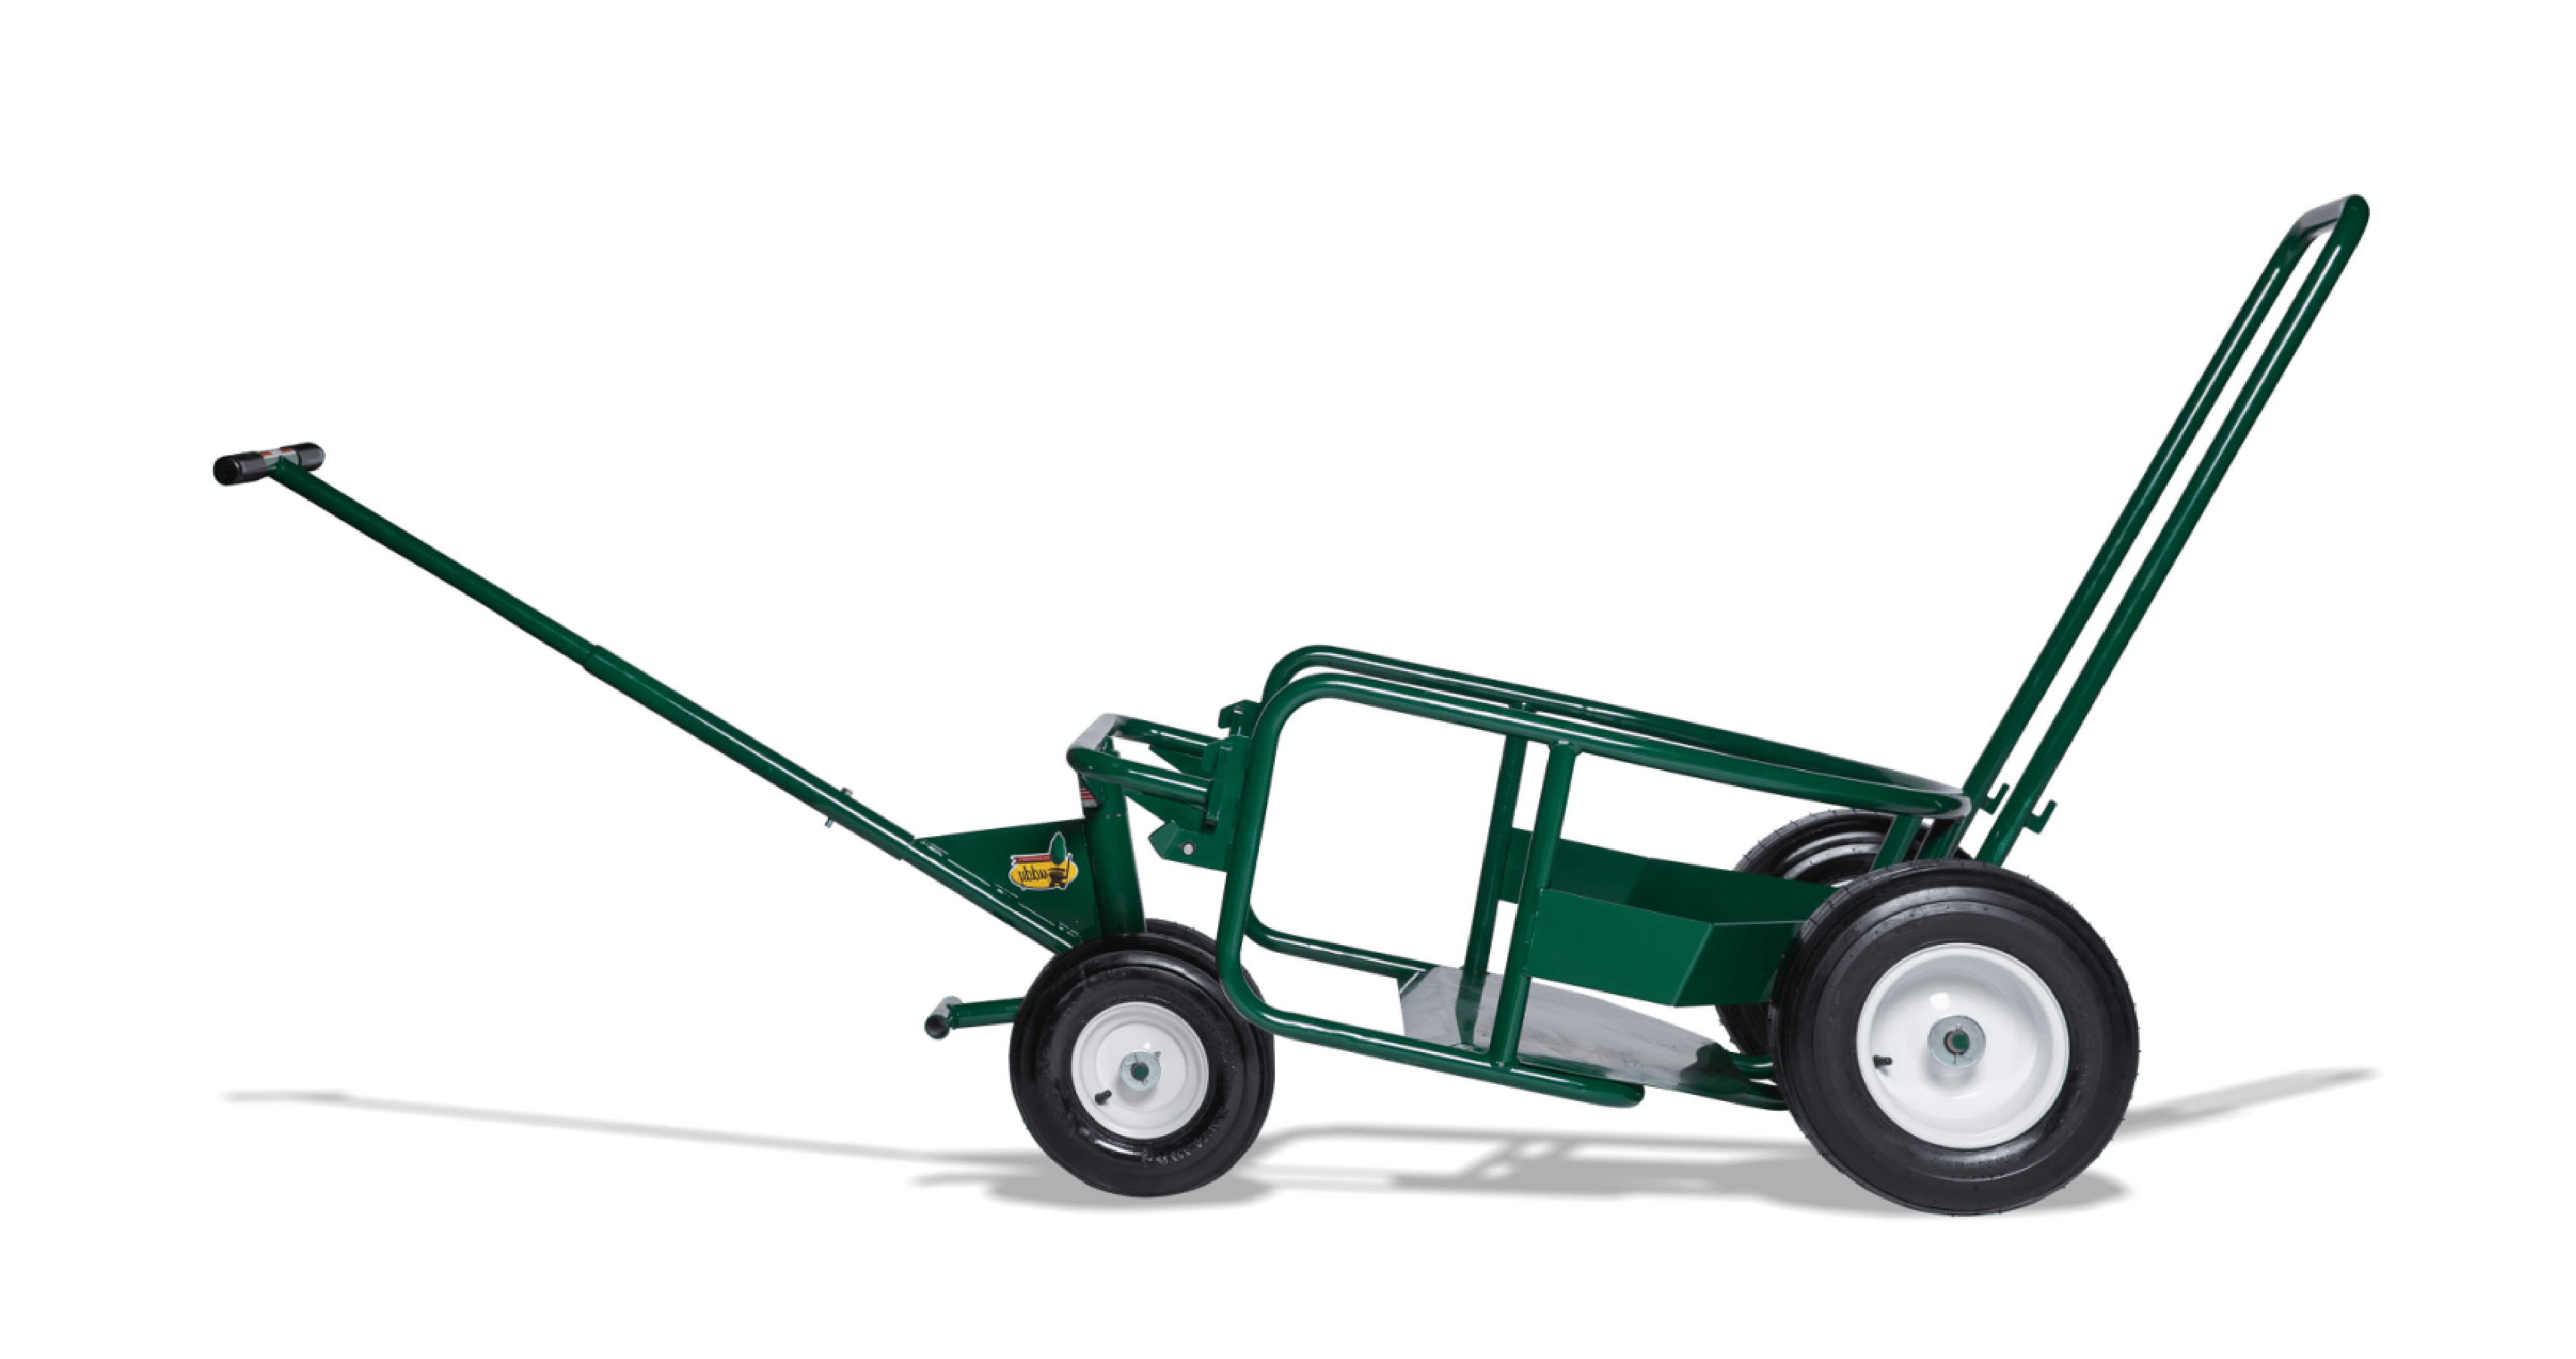 Photo of the green Landscaper's Buddy on white background. Heavy duty hand truck, ball cart, utility cart for skilled trades